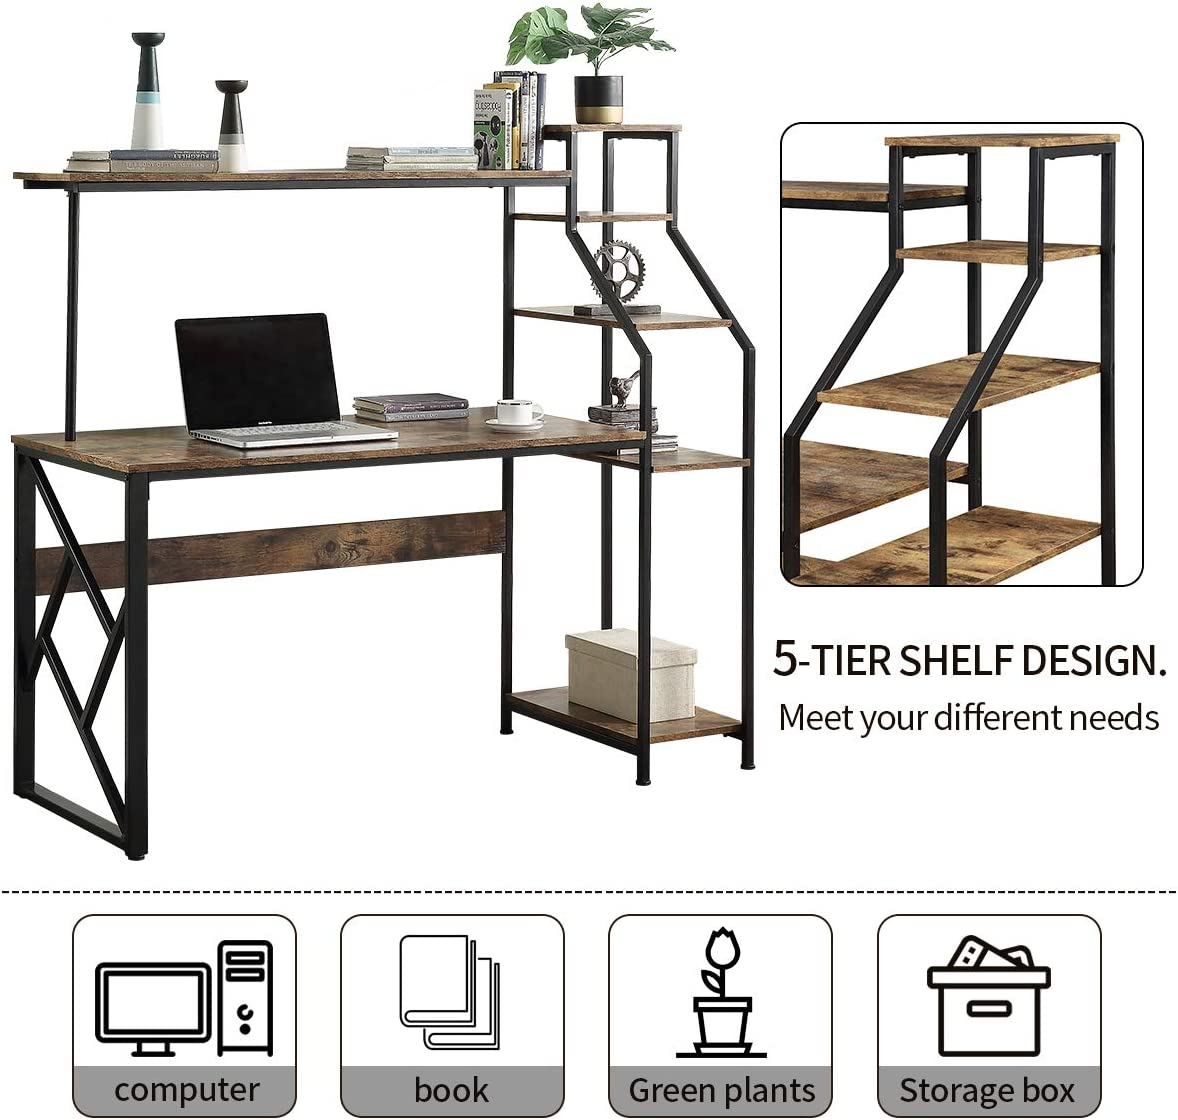 Henf Home Office Computer Desk with Storage Shelves Monitor Stand Study Table Modern Steel Frame Compact Wood Desk Home Office Workstation Type 5